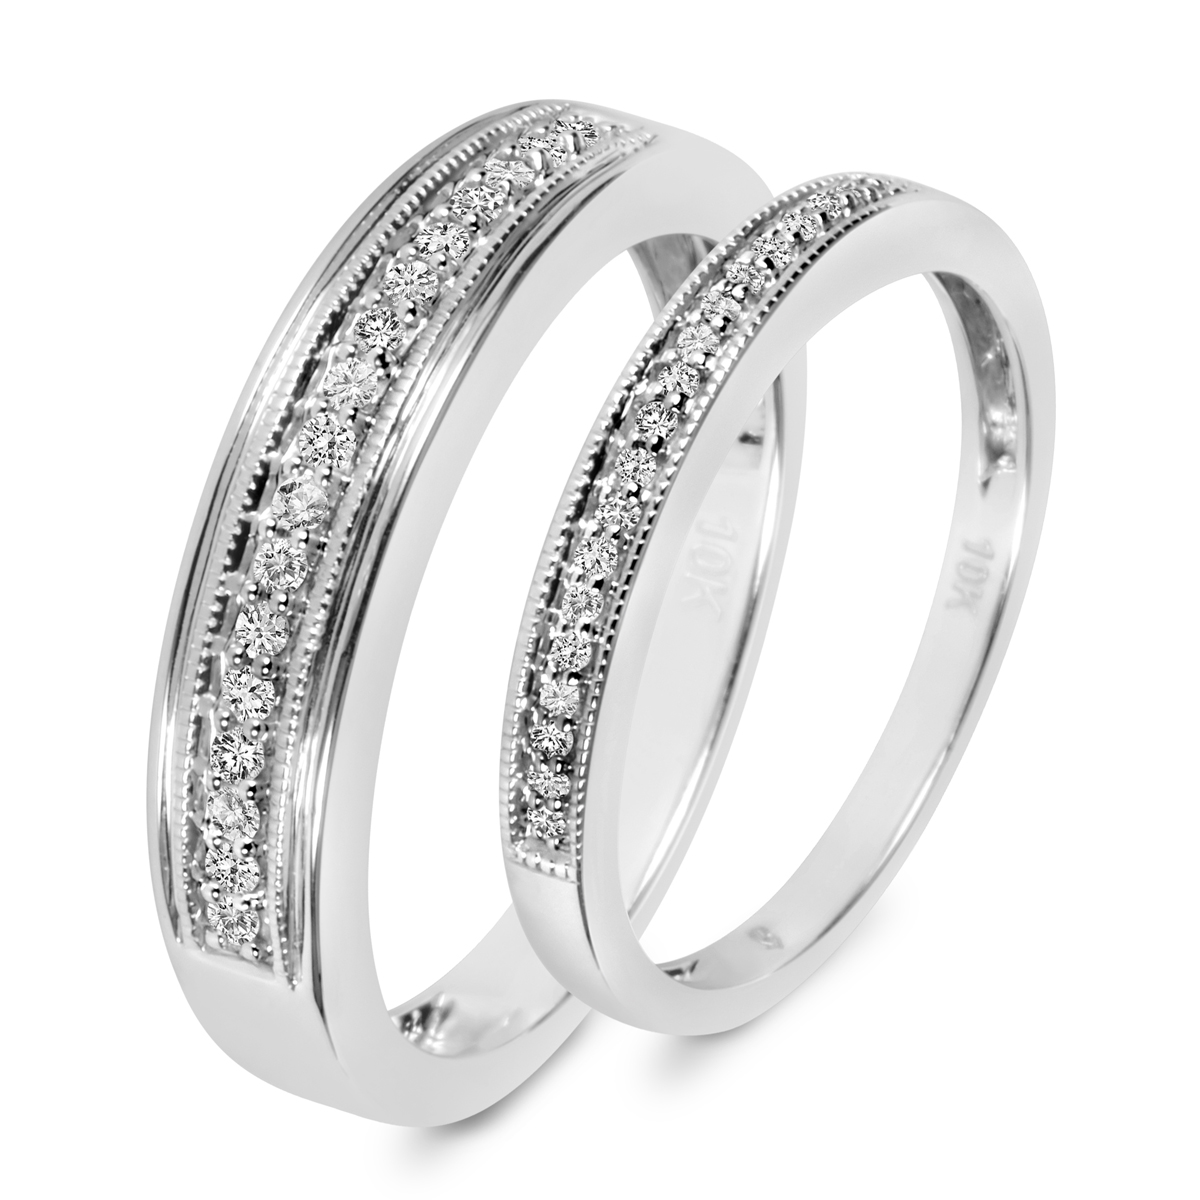 It is a graphic of Affordable Wedding Band Sets - Wedding Band Sets